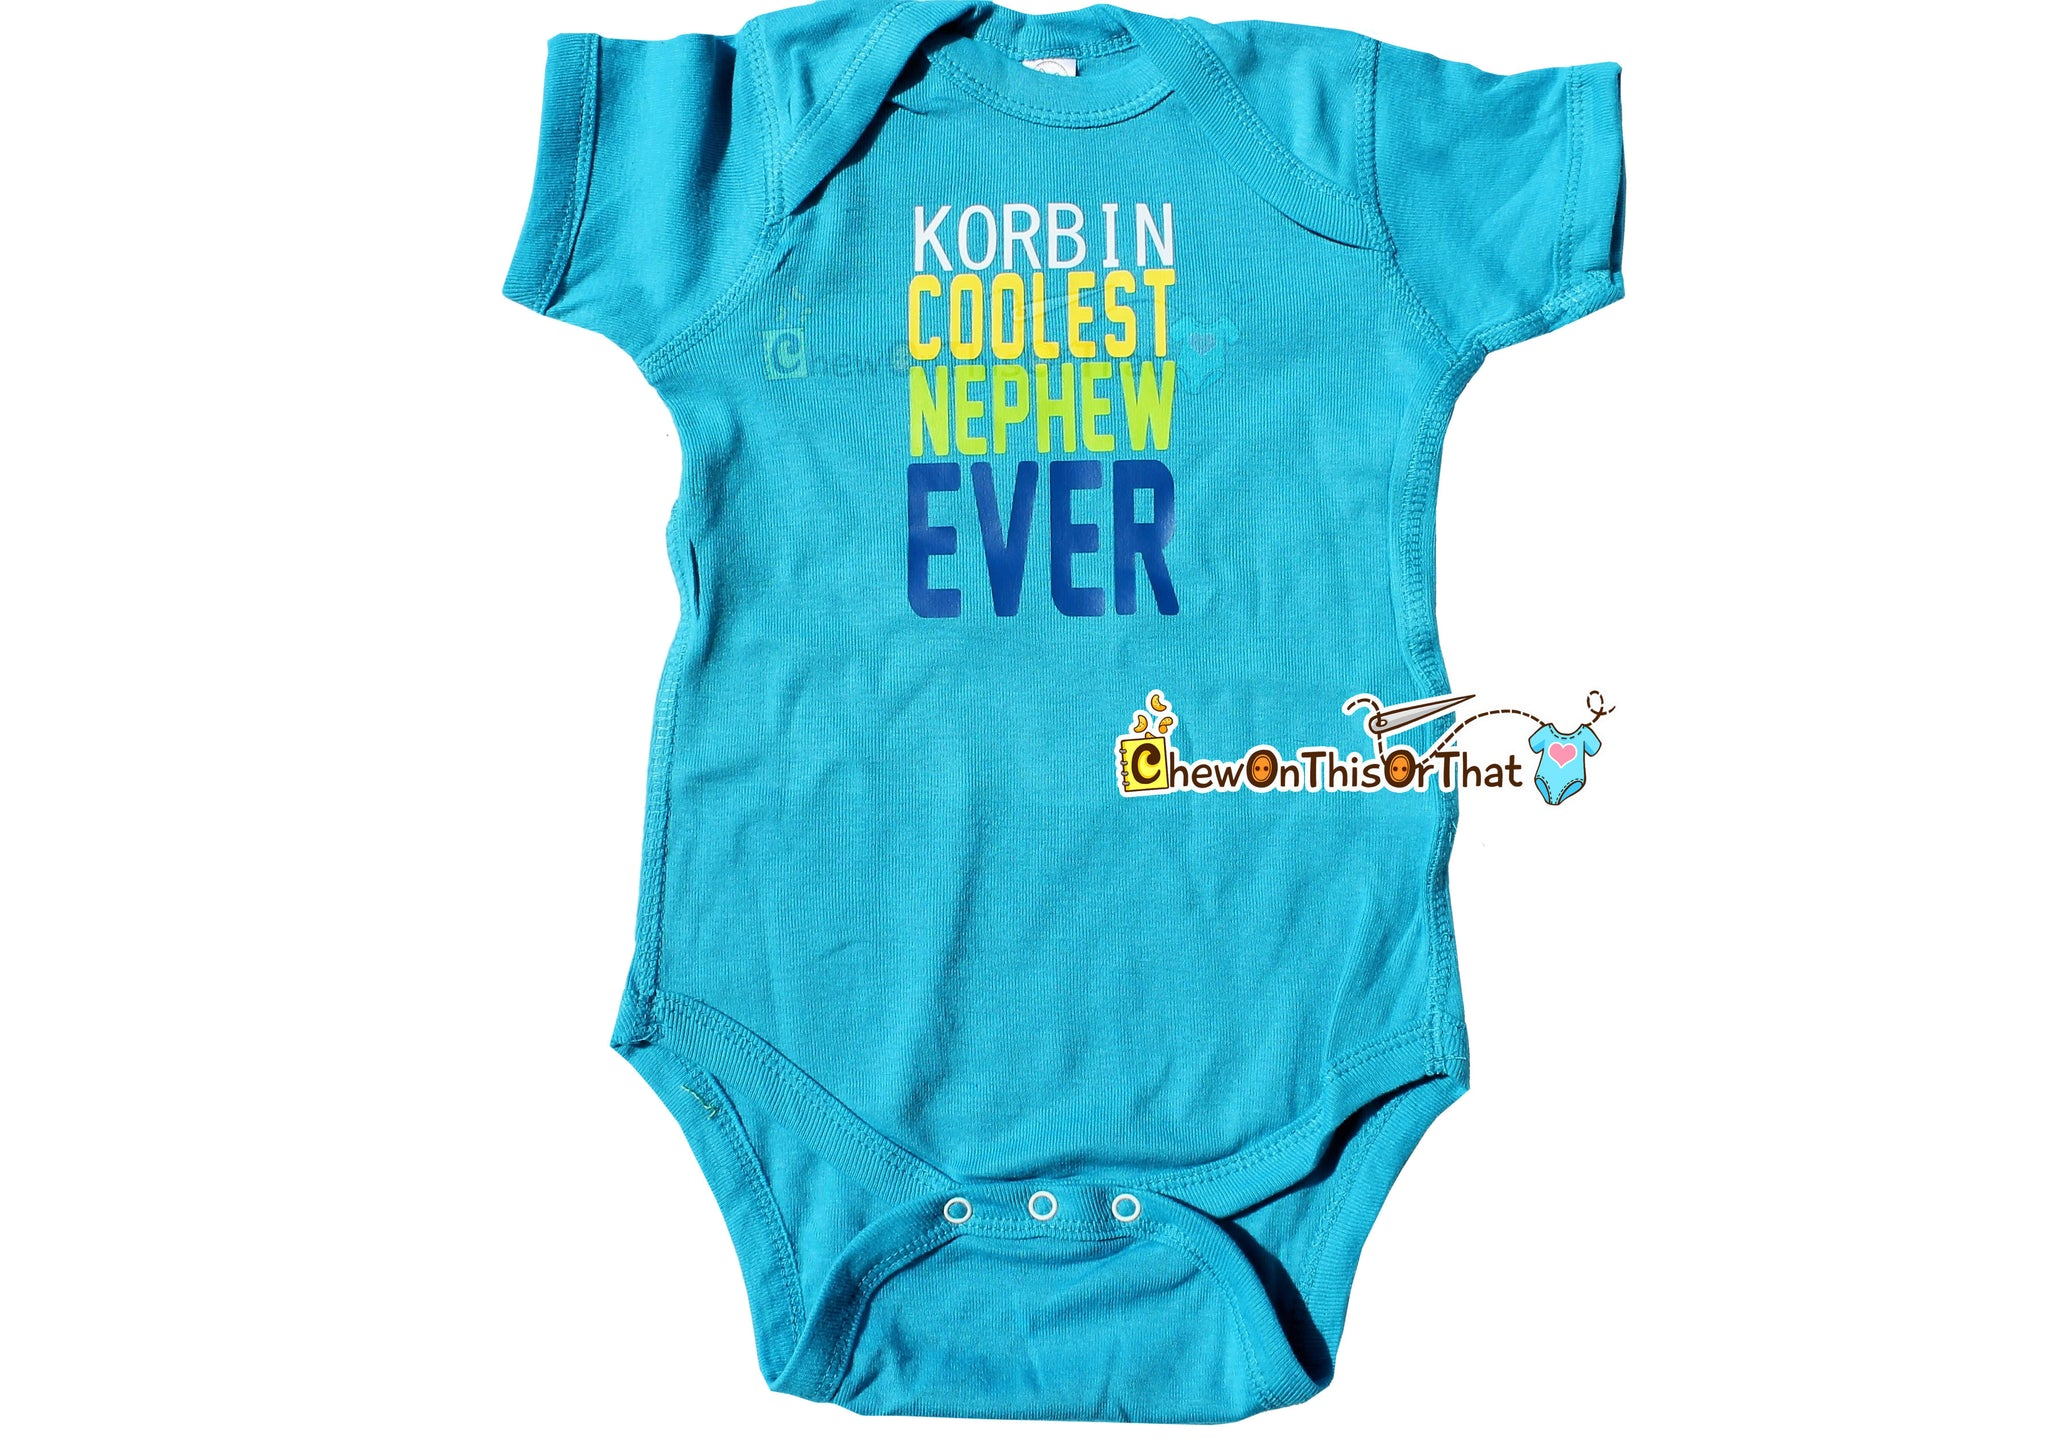 Coolest nephew ever personalized blue statement bodysuit new baby coolest nephew ever personalized blue statement bodysuit new baby gift from aunt or uncle negle Gallery